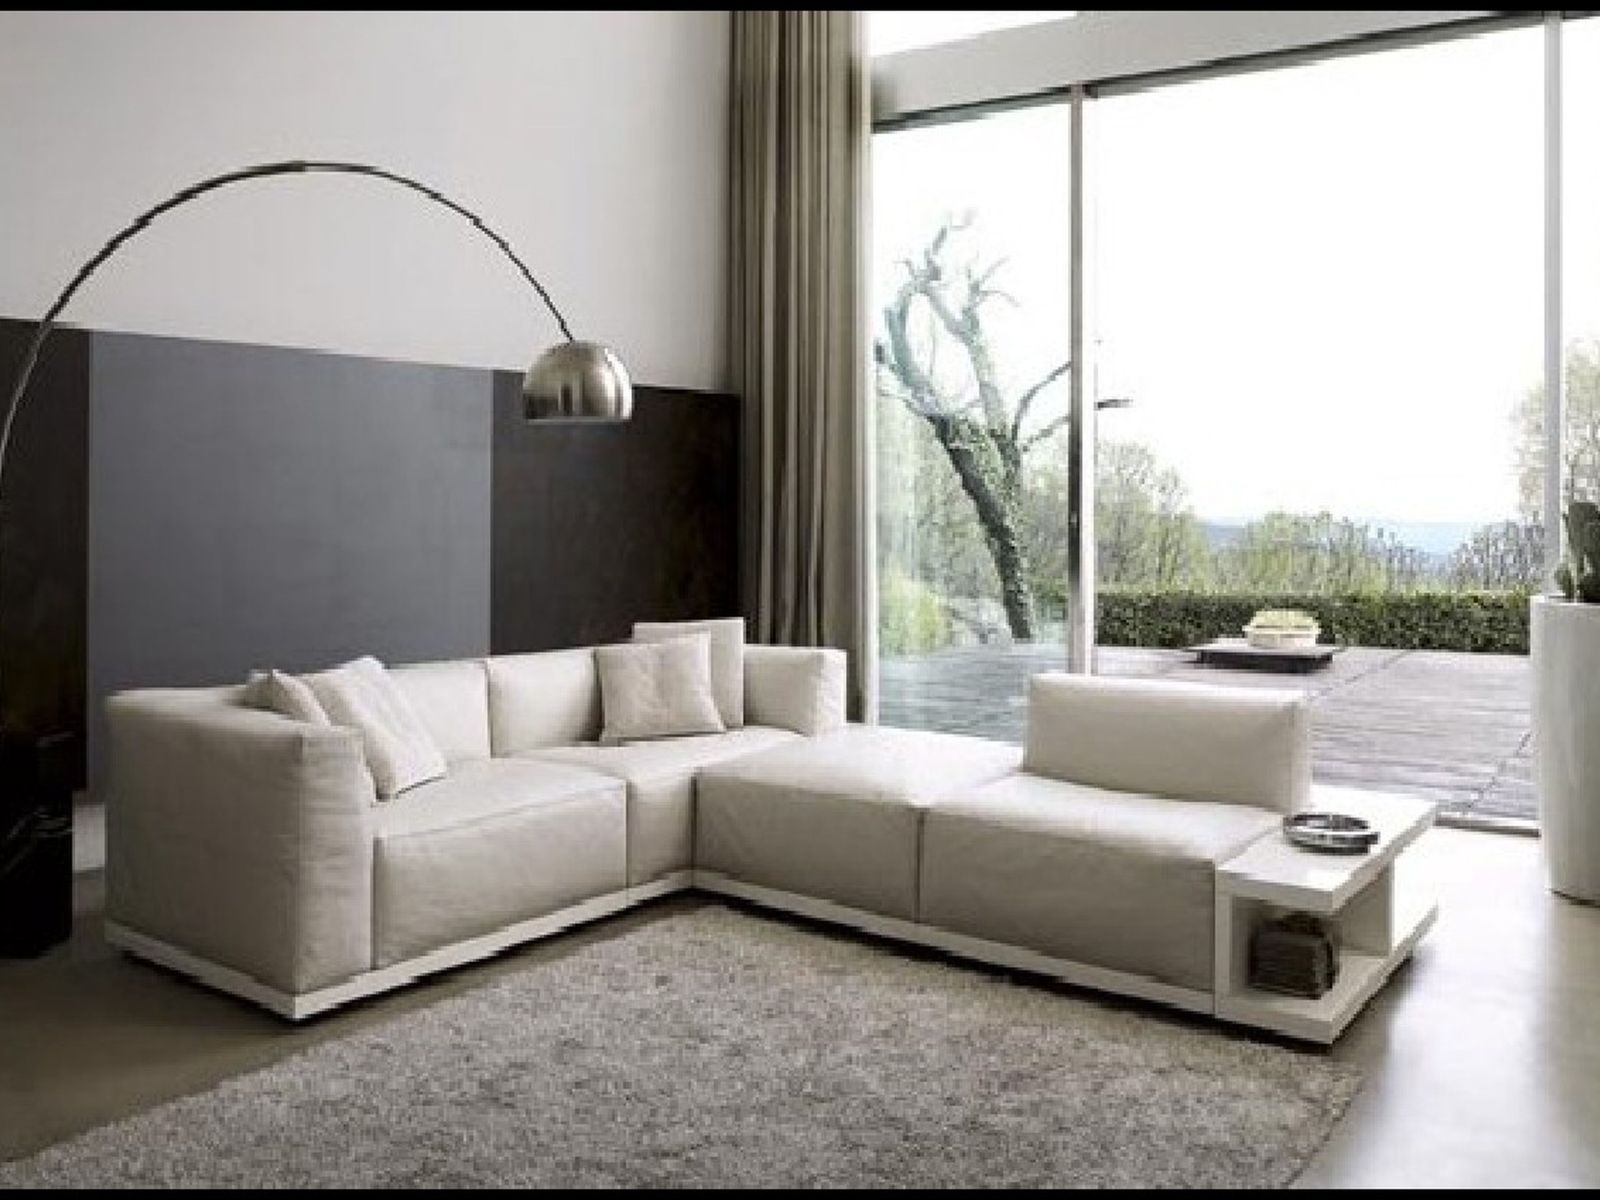 ▻ Sofa : 29 Elegant Sectional Sofa With Talsma Furniture And For Grand Rapids Mi Sectional Sofas (View 6 of 10)